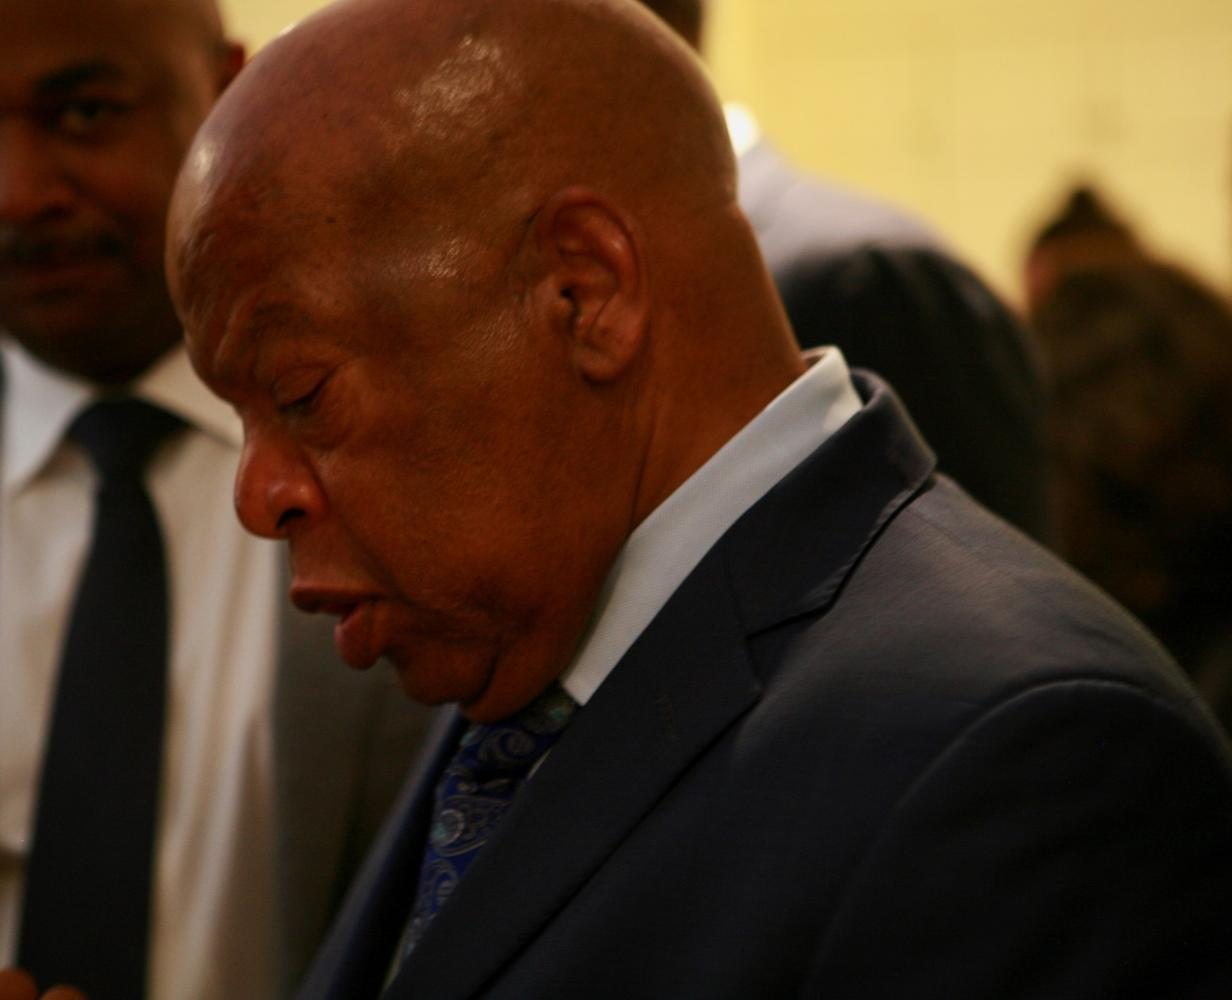 Congressman John Lewis speaks at Inman park about current issues including UVA protests.